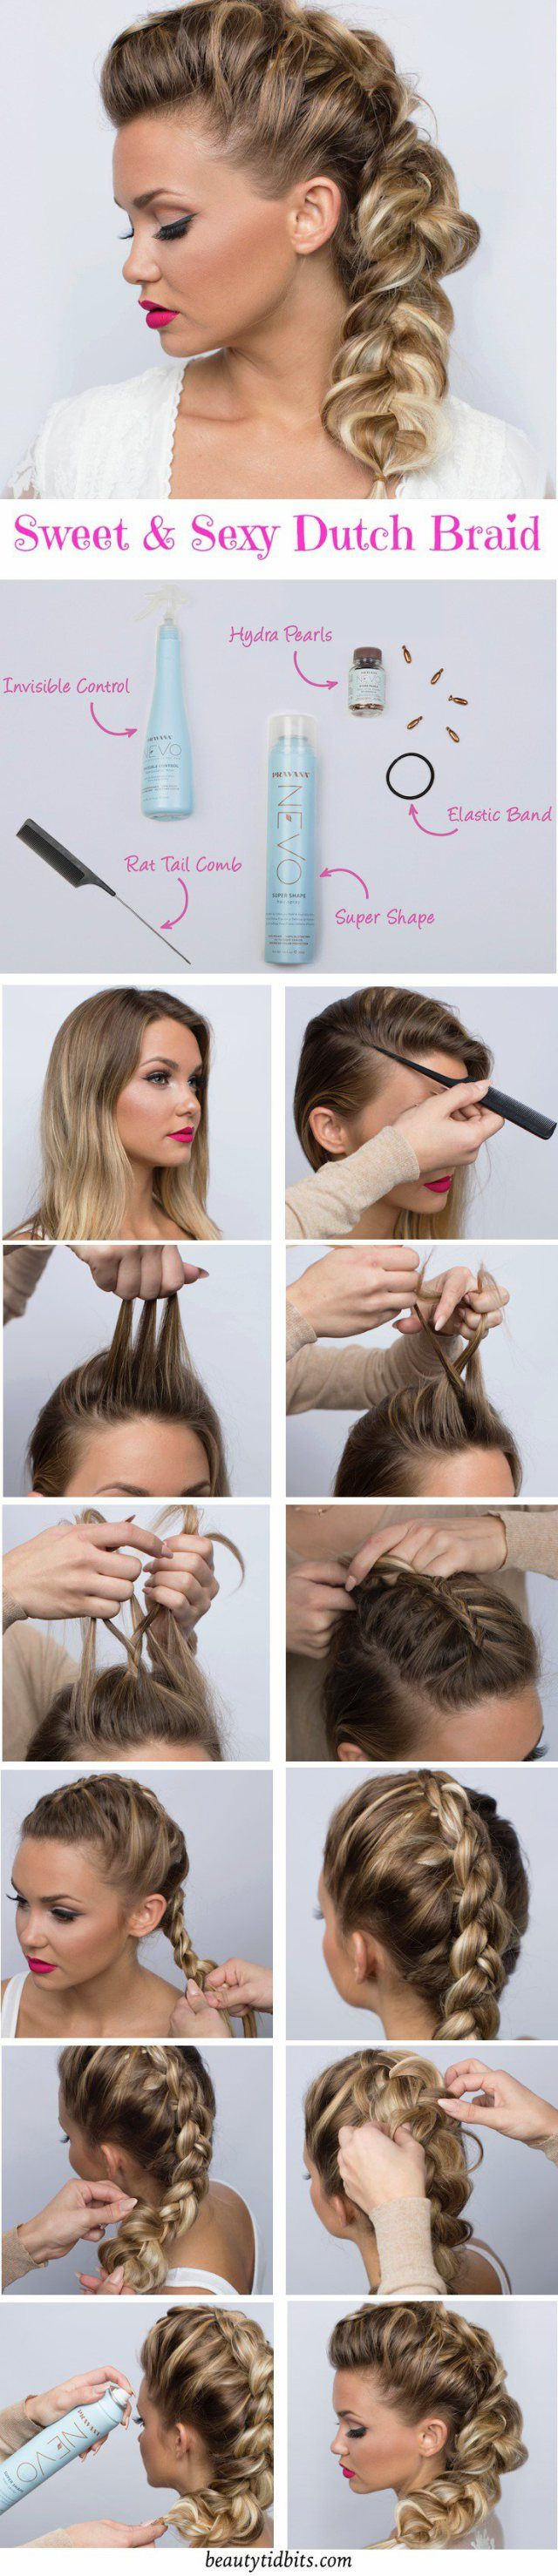 Faux Hawk Haircut Trends To Look For